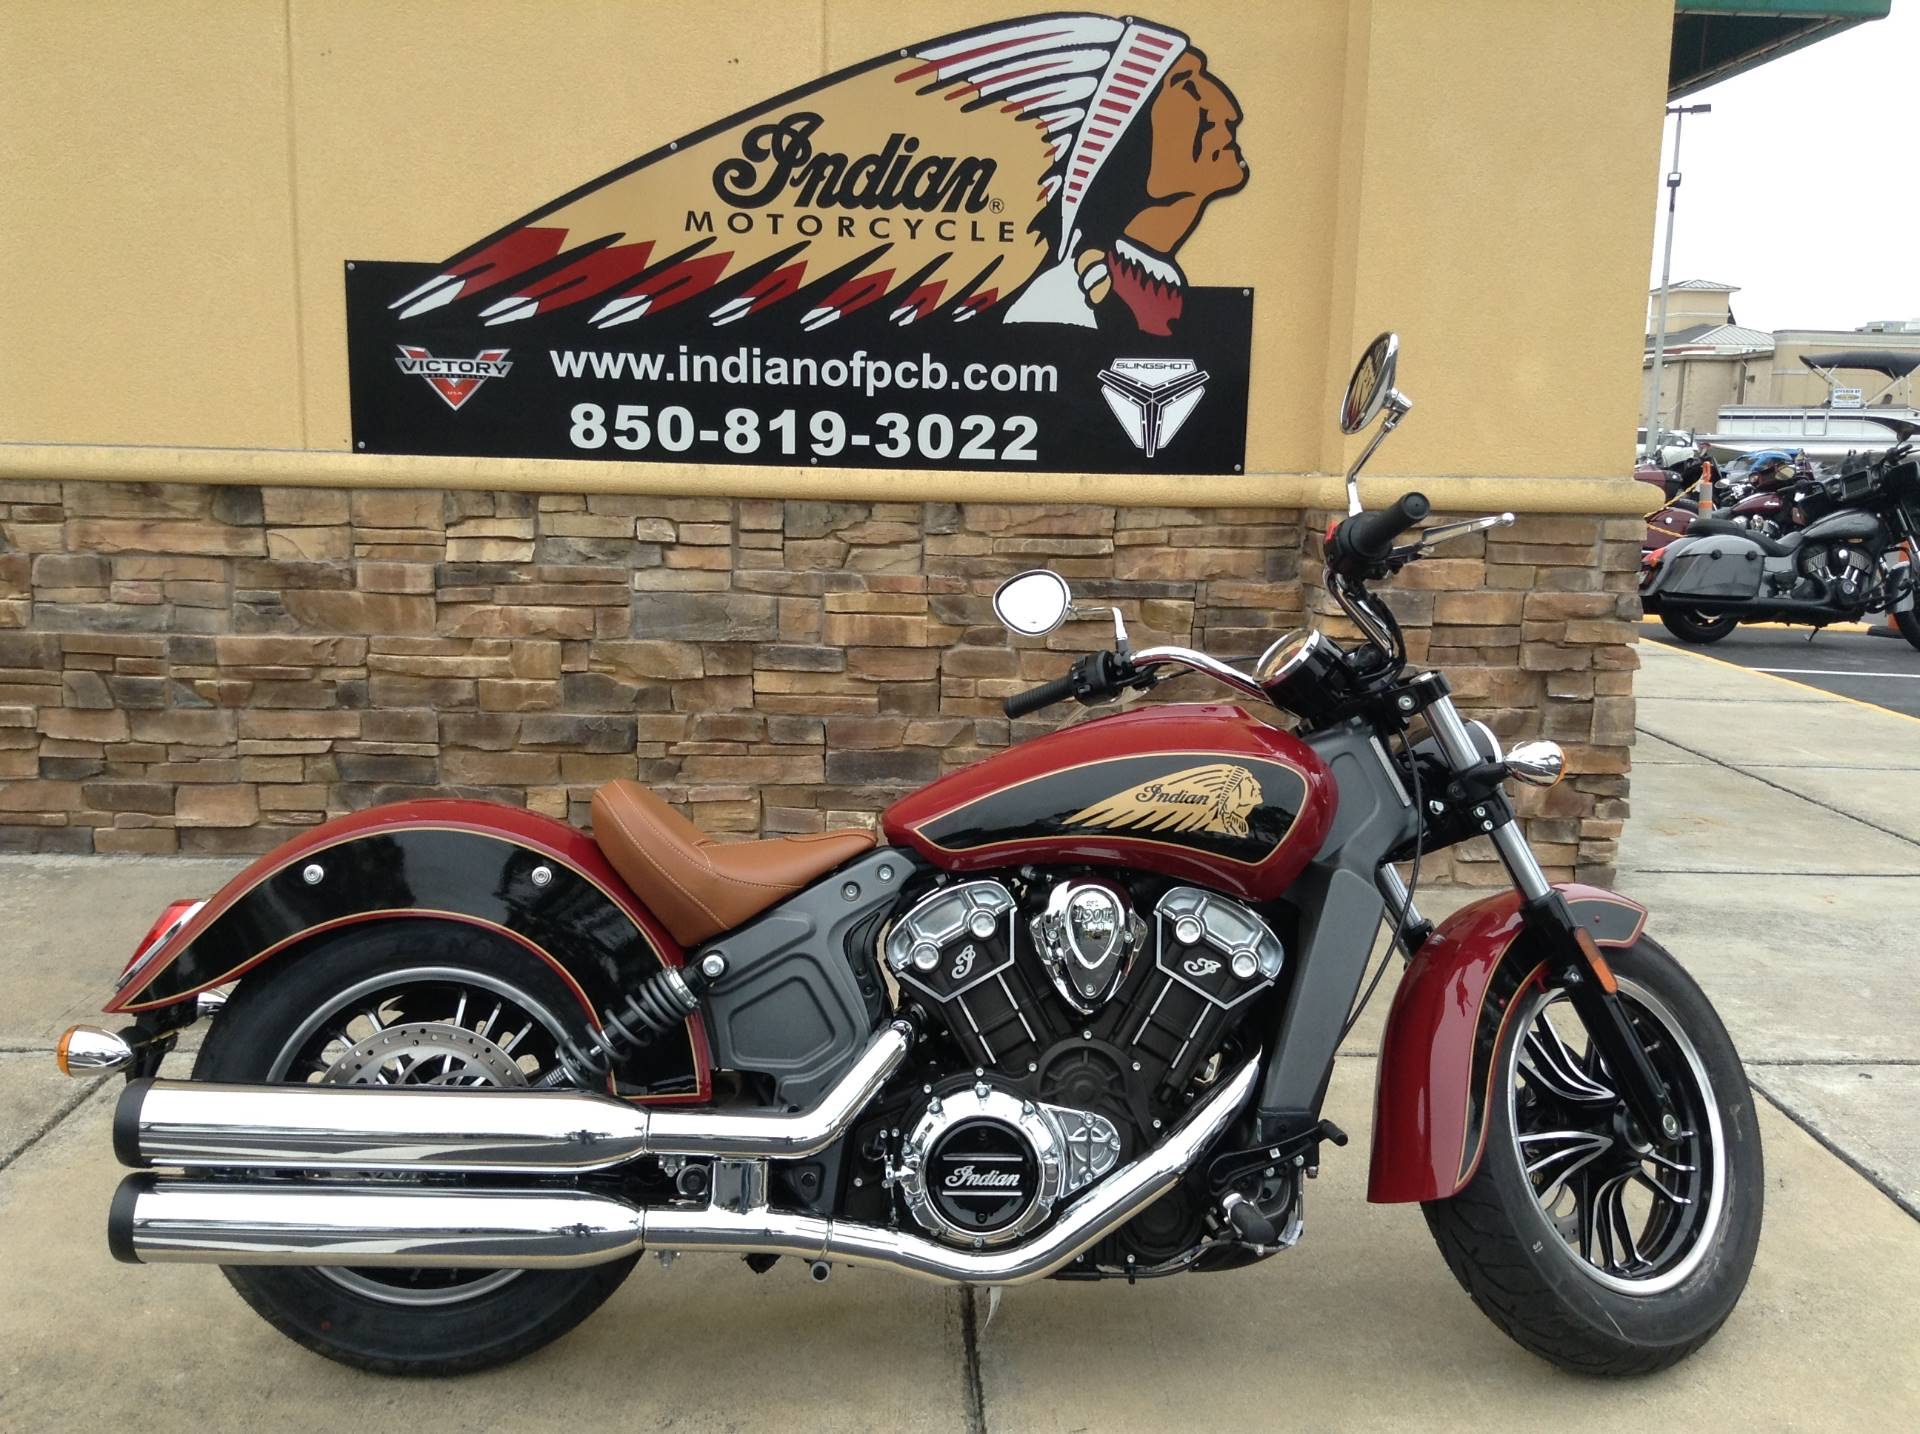 2019 Indian SCOUT ABS in Panama City Beach, Florida - Photo 1